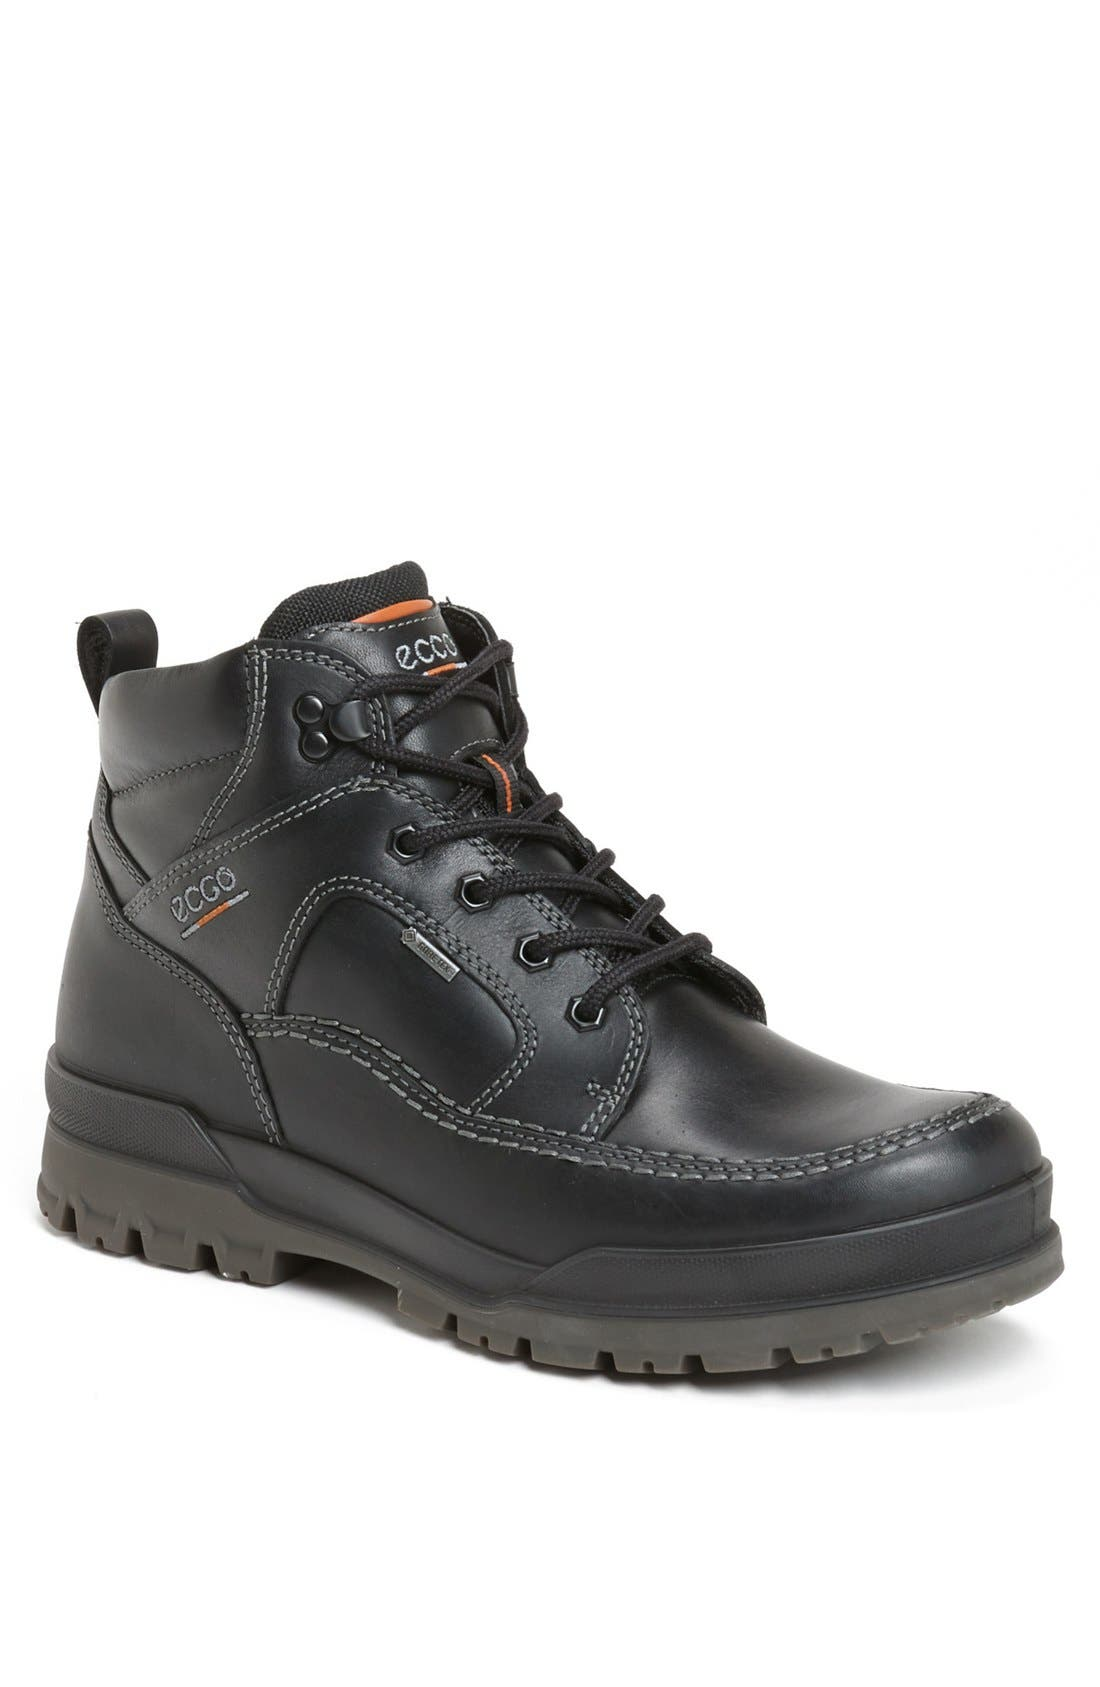 Alternate Image 1 Selected - ECCO 'Track VI' Waterproof Moc Toe Boot